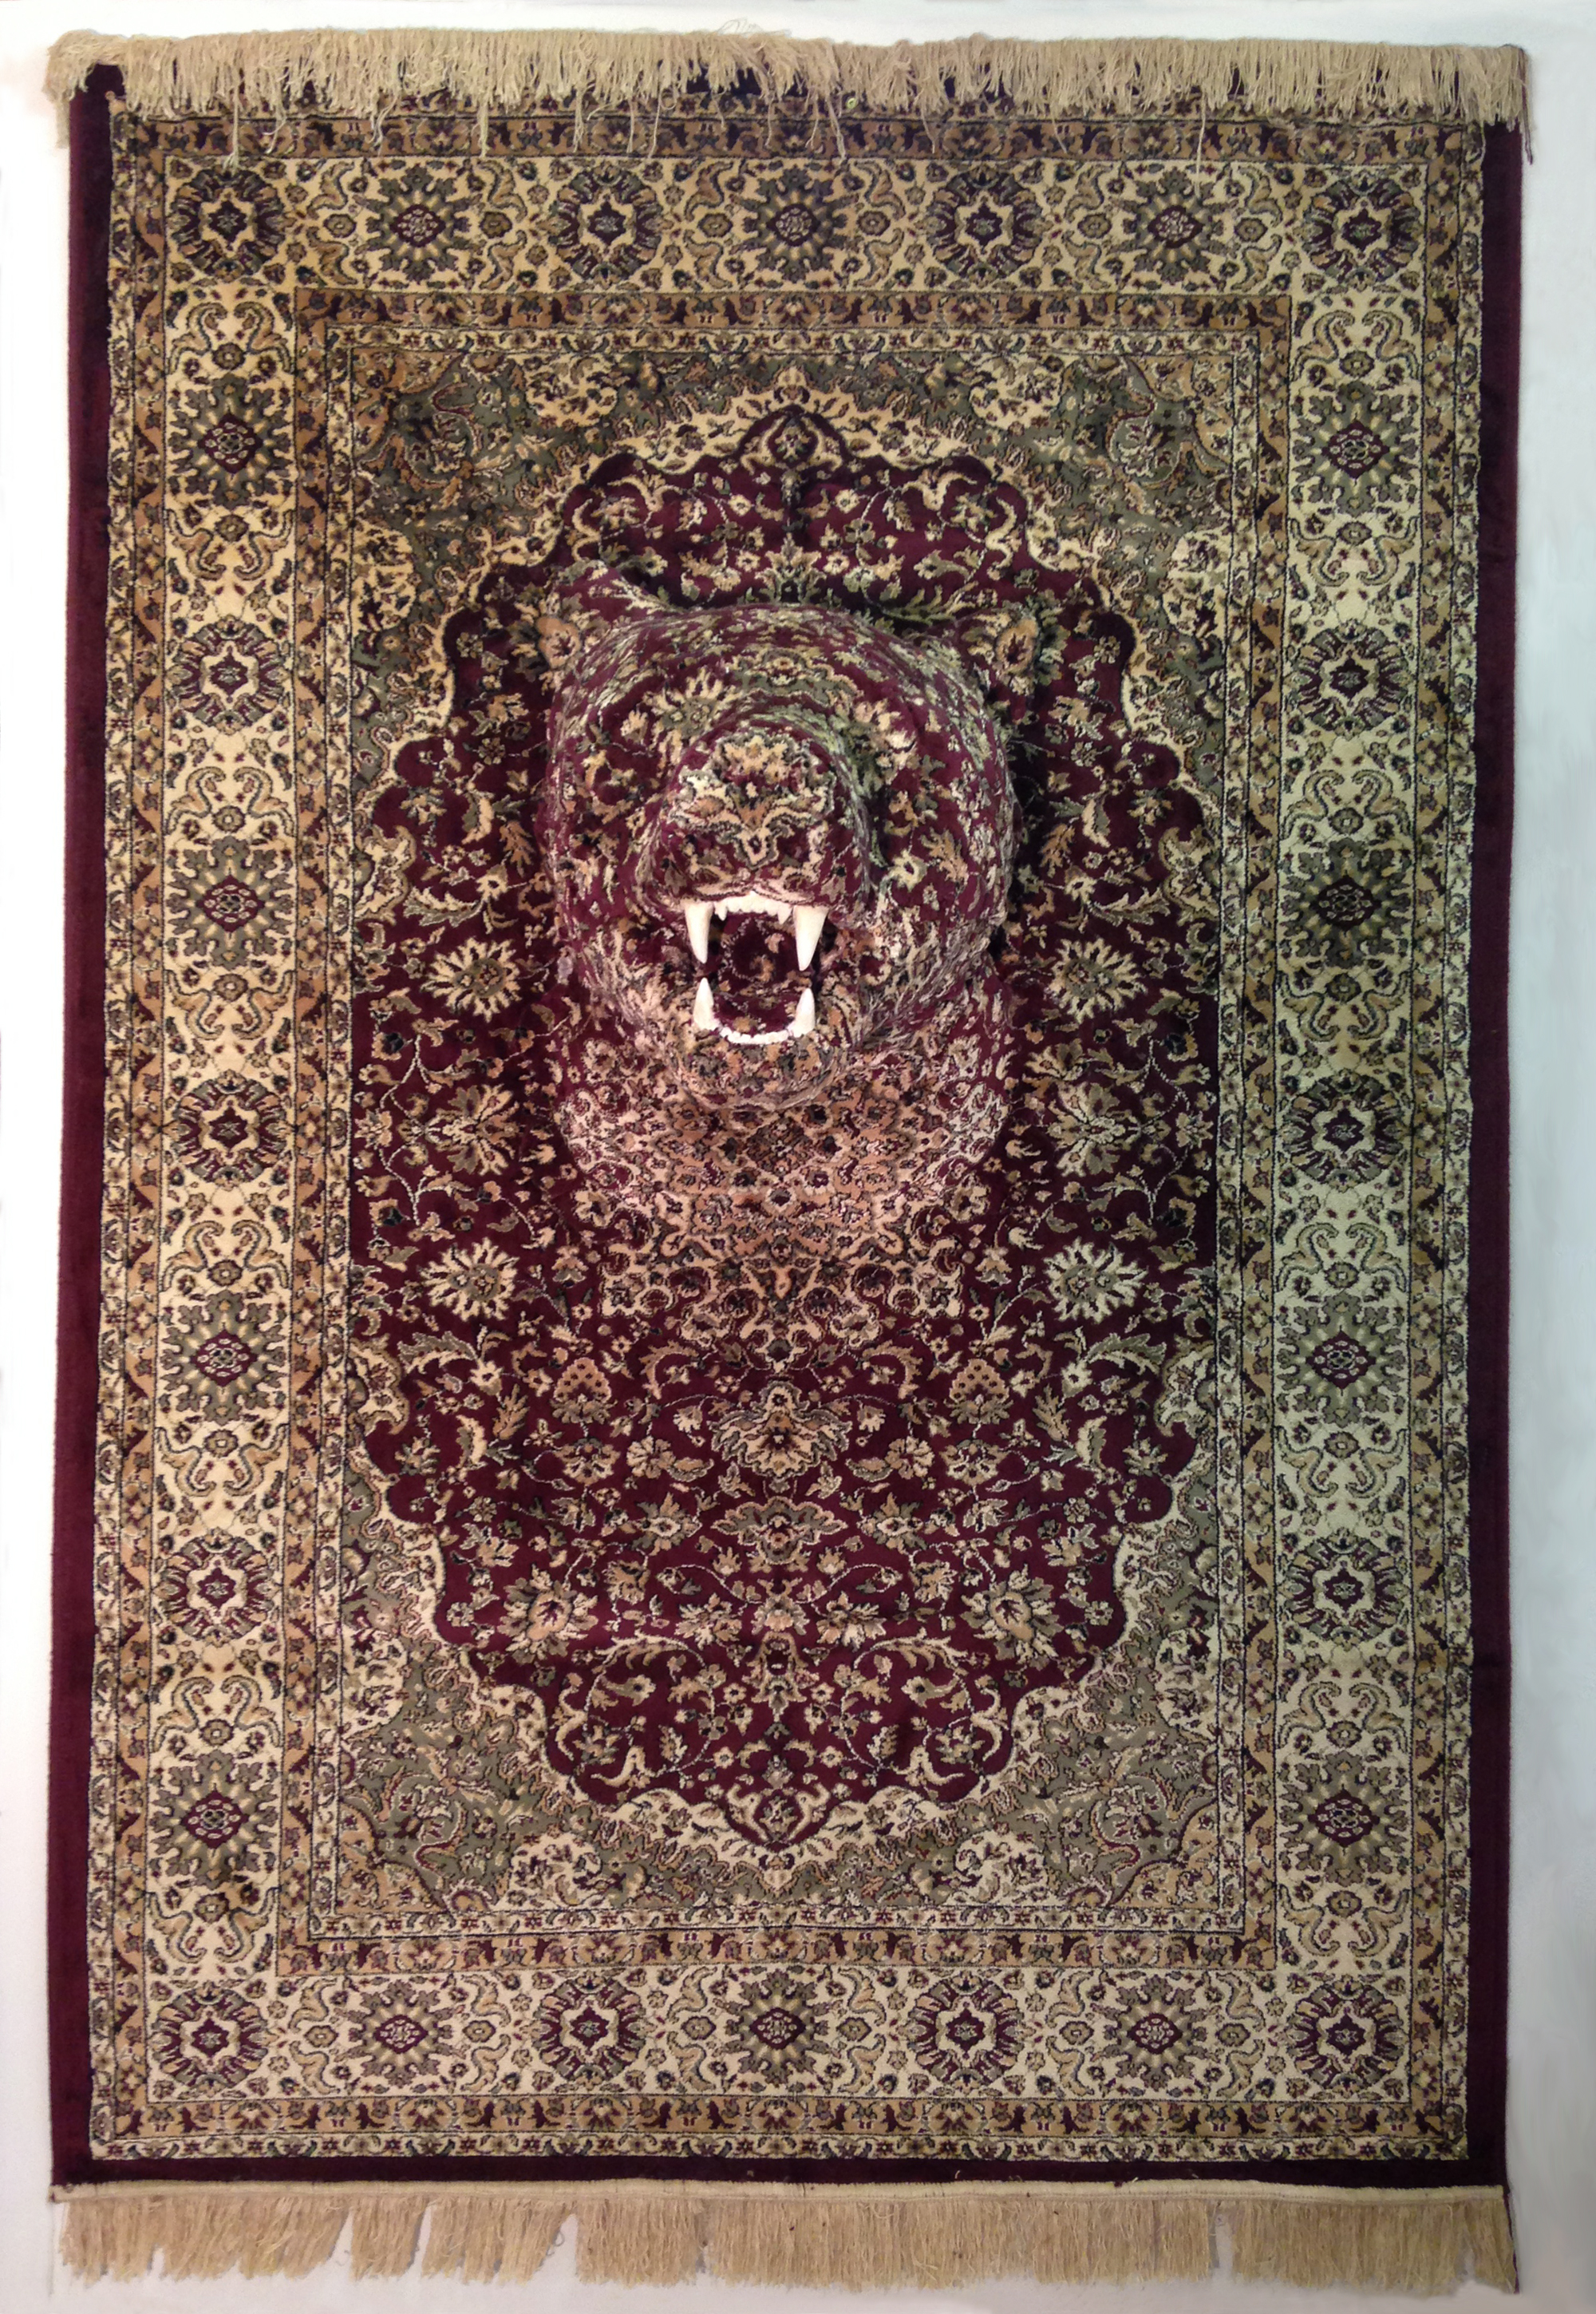 Life Size Animals Emerge From Persian Rugs In Perception